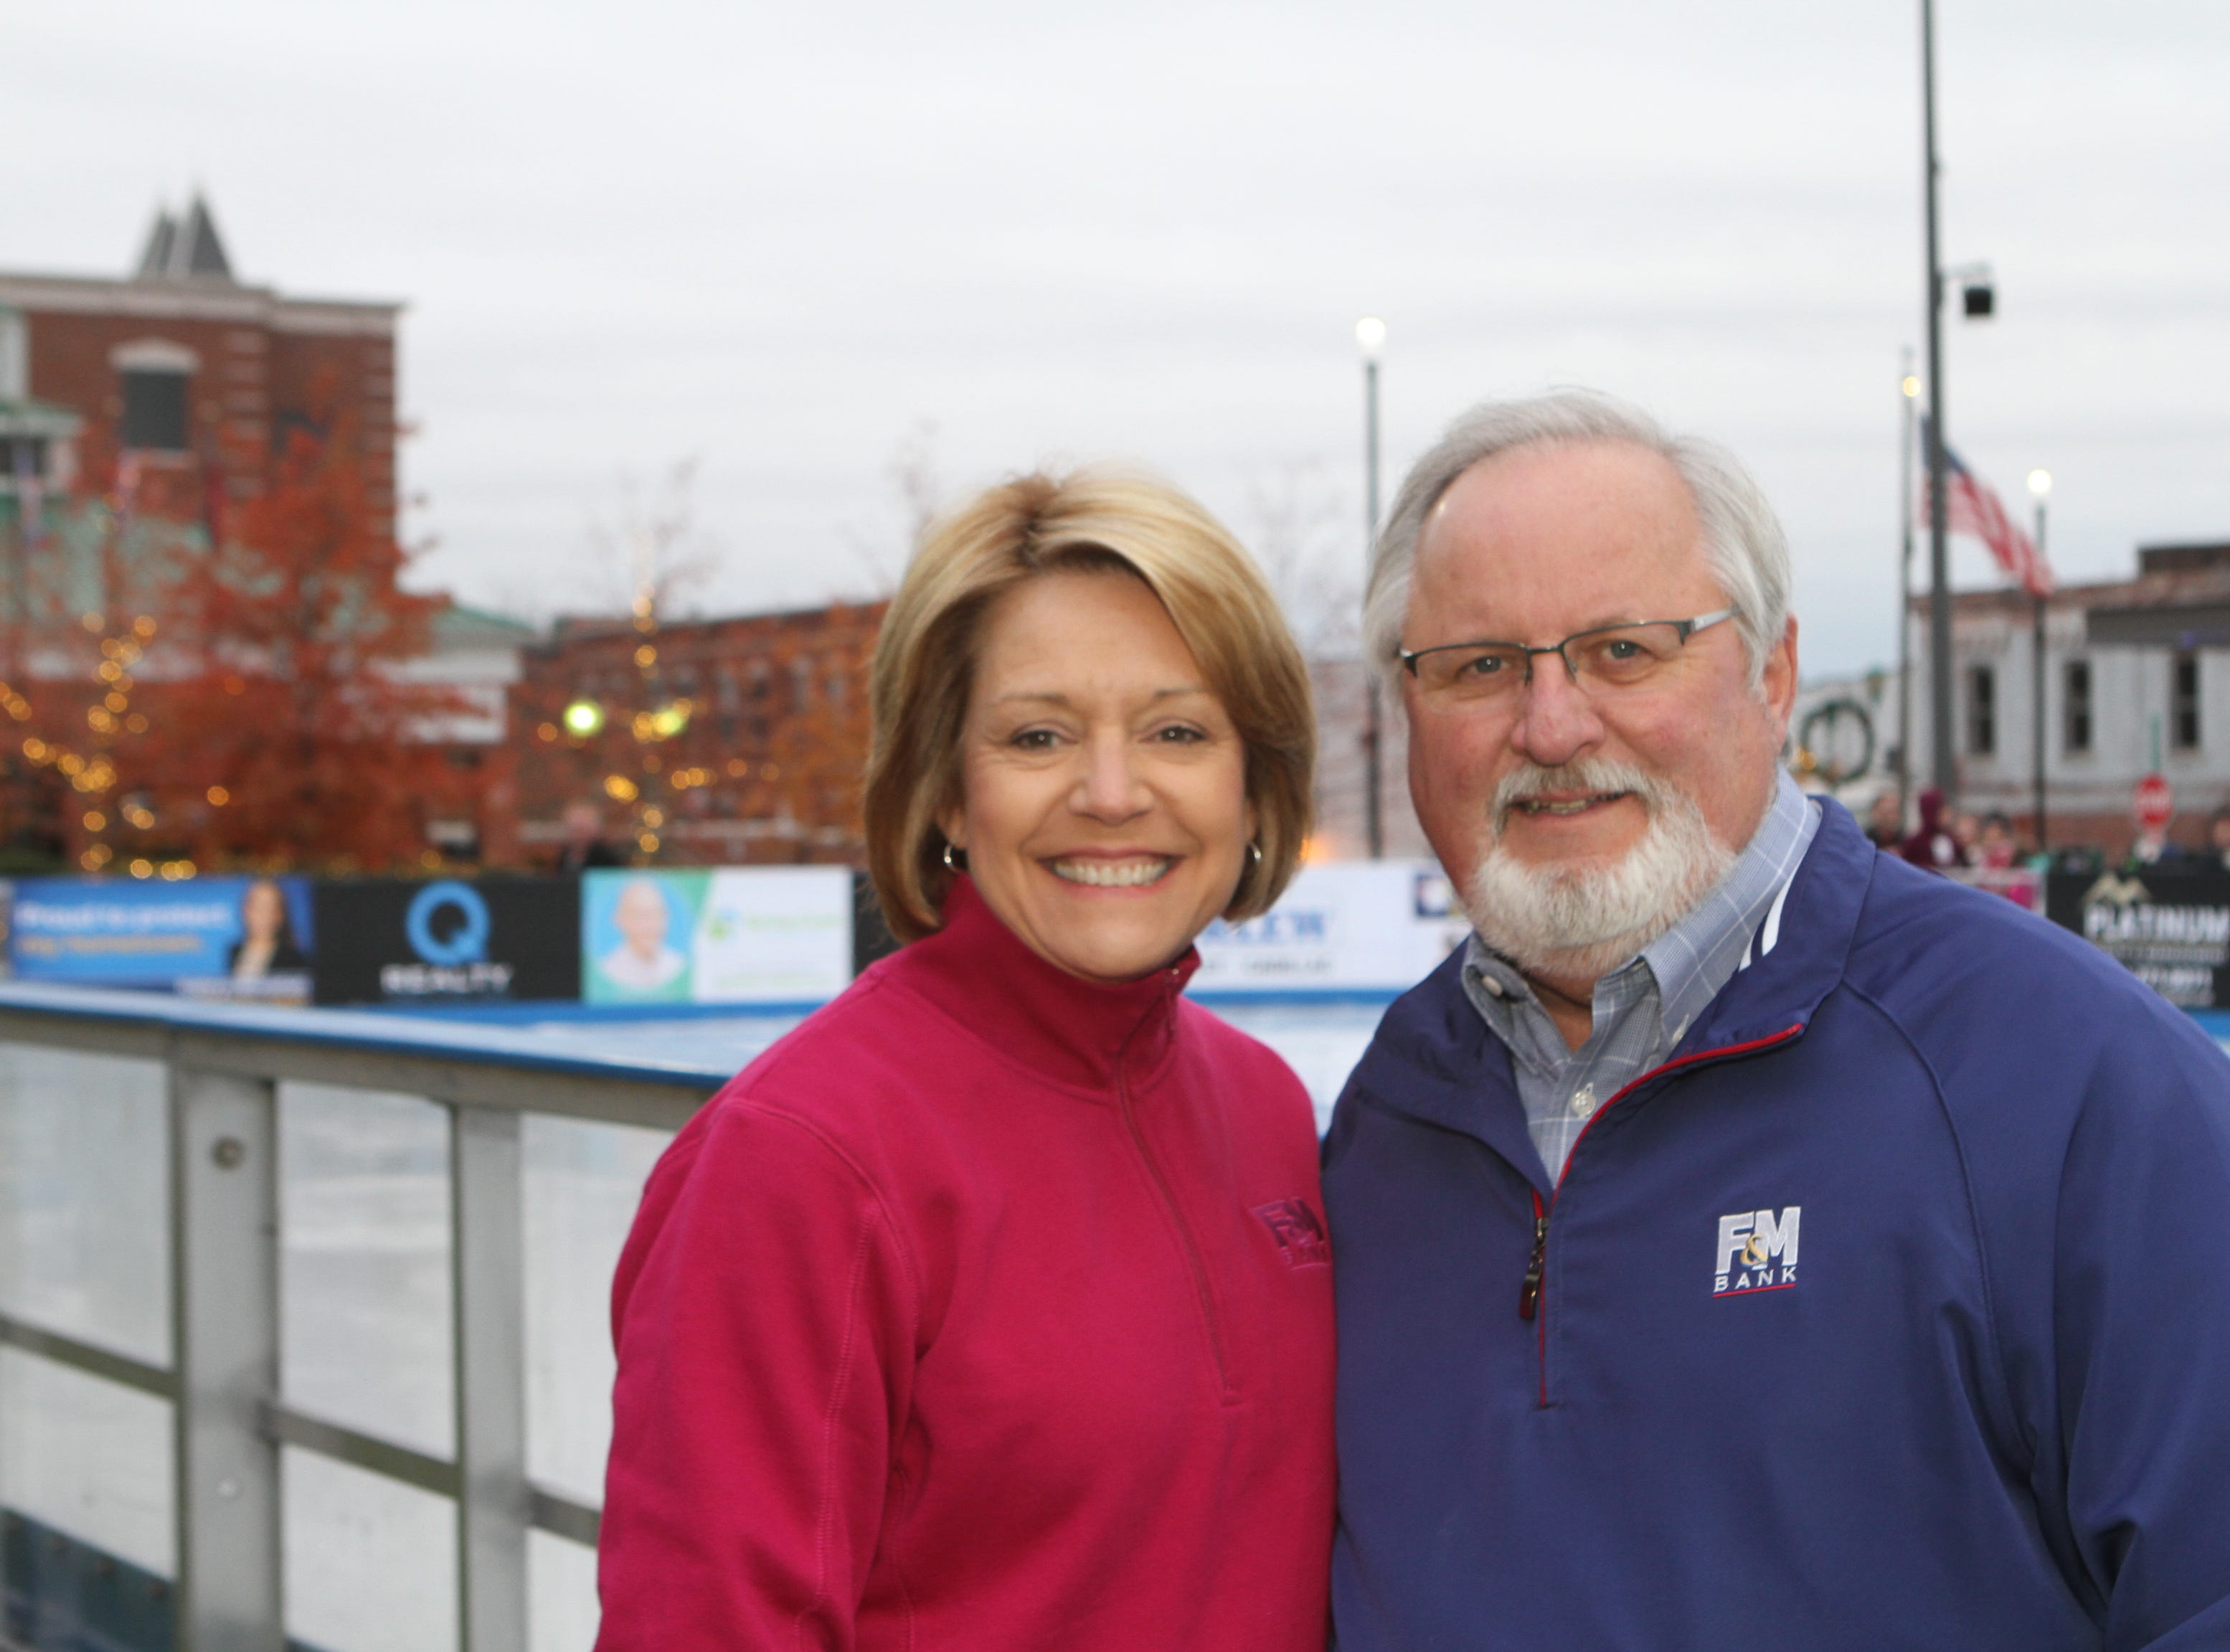 Cindy and Sammy Stuard at the opening of Clarksville's Downtown Commons Winter Ice Rink on Friday, Nov. 23, 2018.